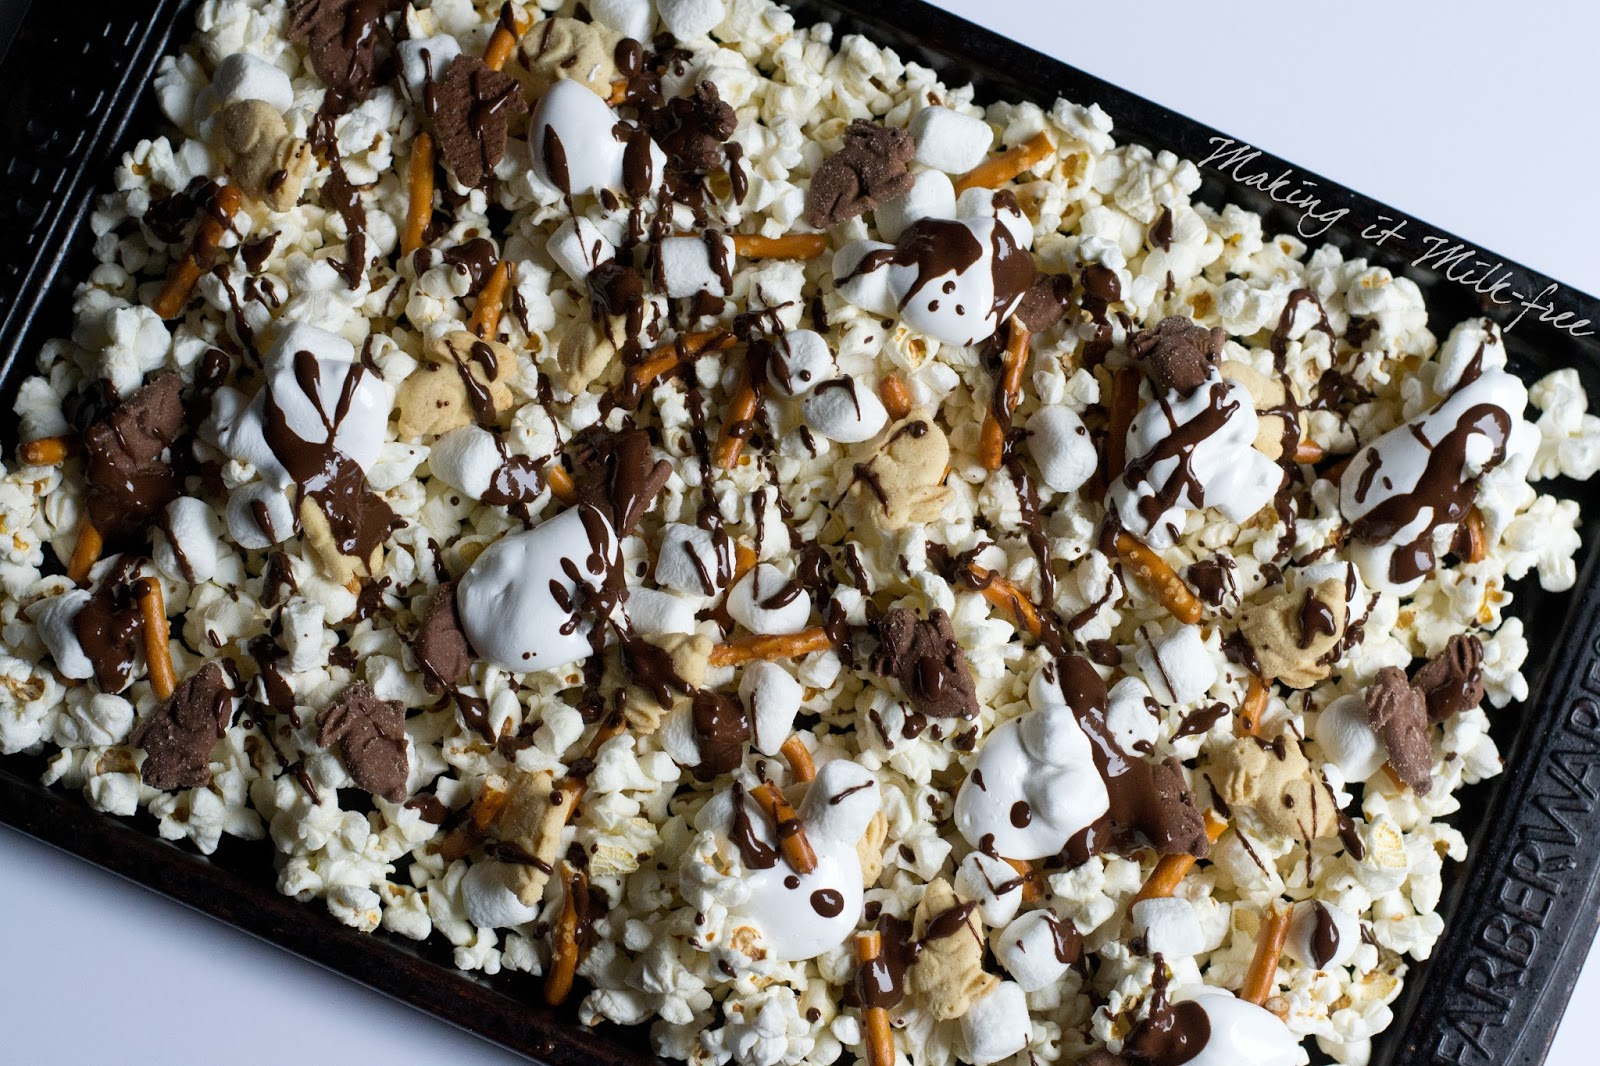 S'mores Popcorn Snack Mix by Making it Milk-free